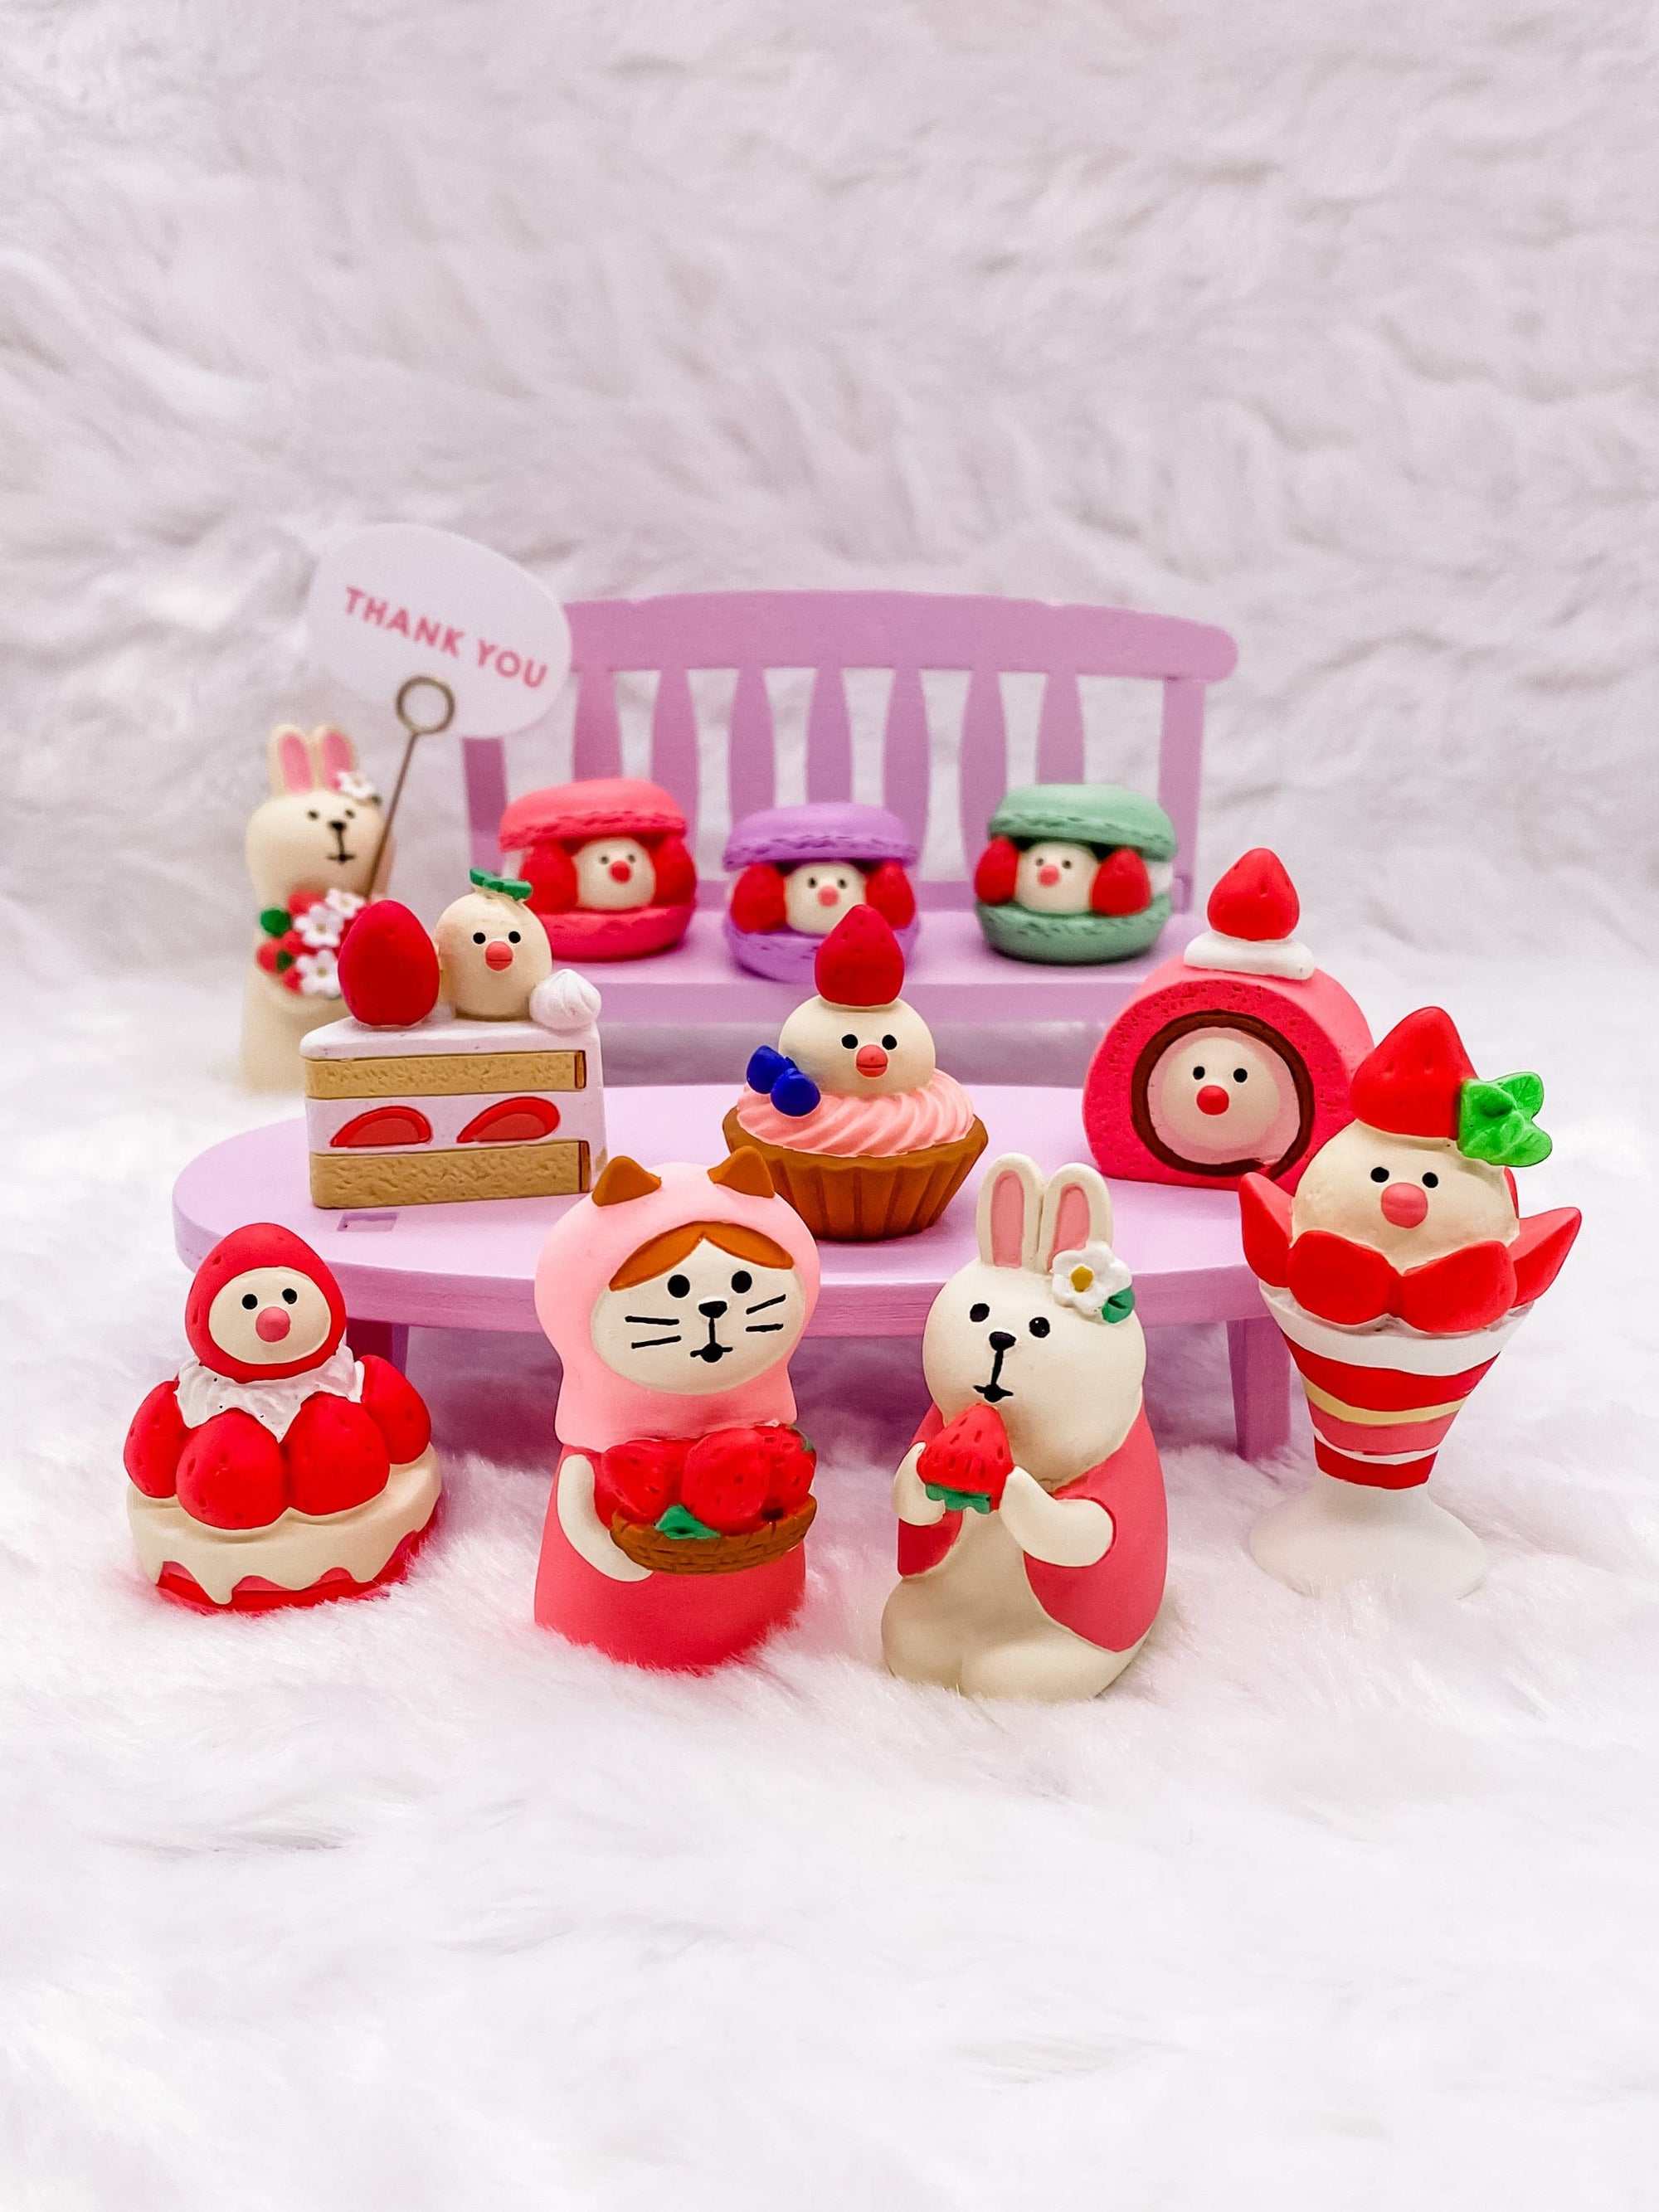 Very Mattary Strawberry Complete Set by Decole